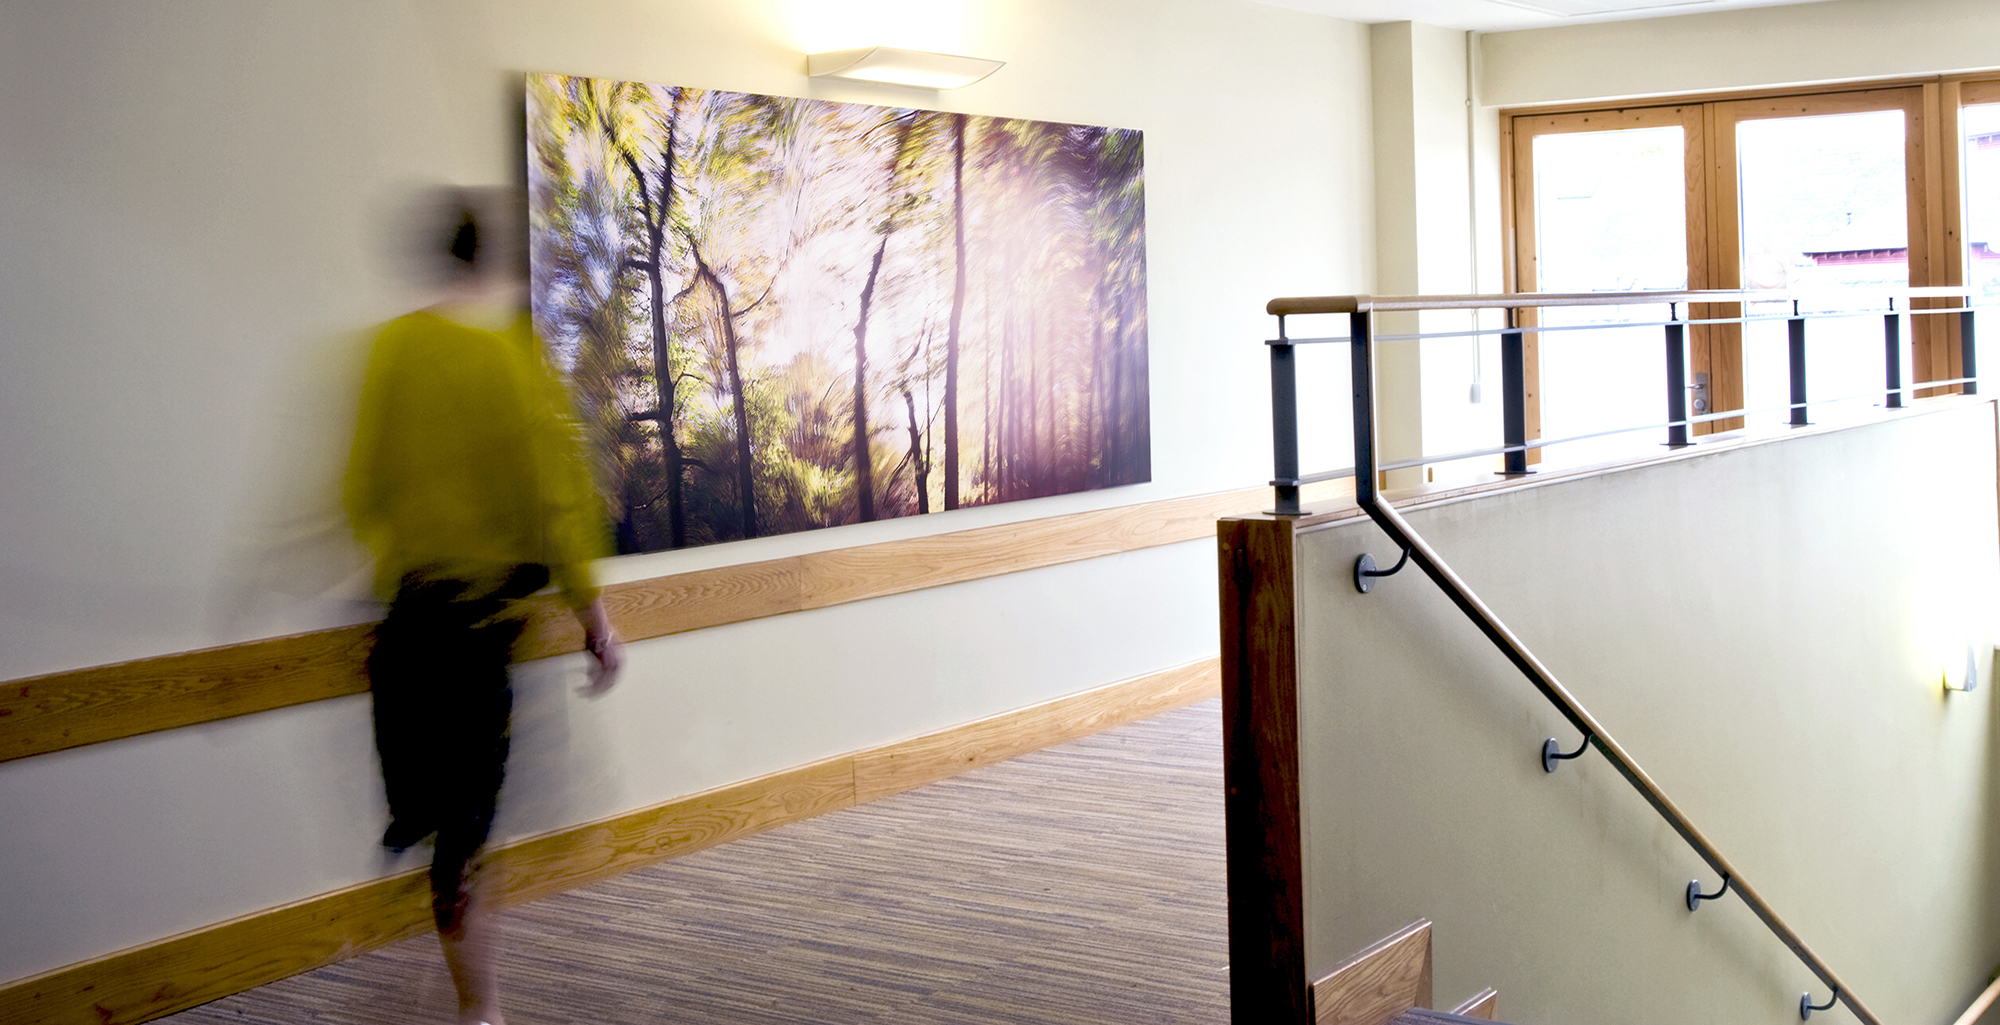 Commissioned artwork for healthcare interiors